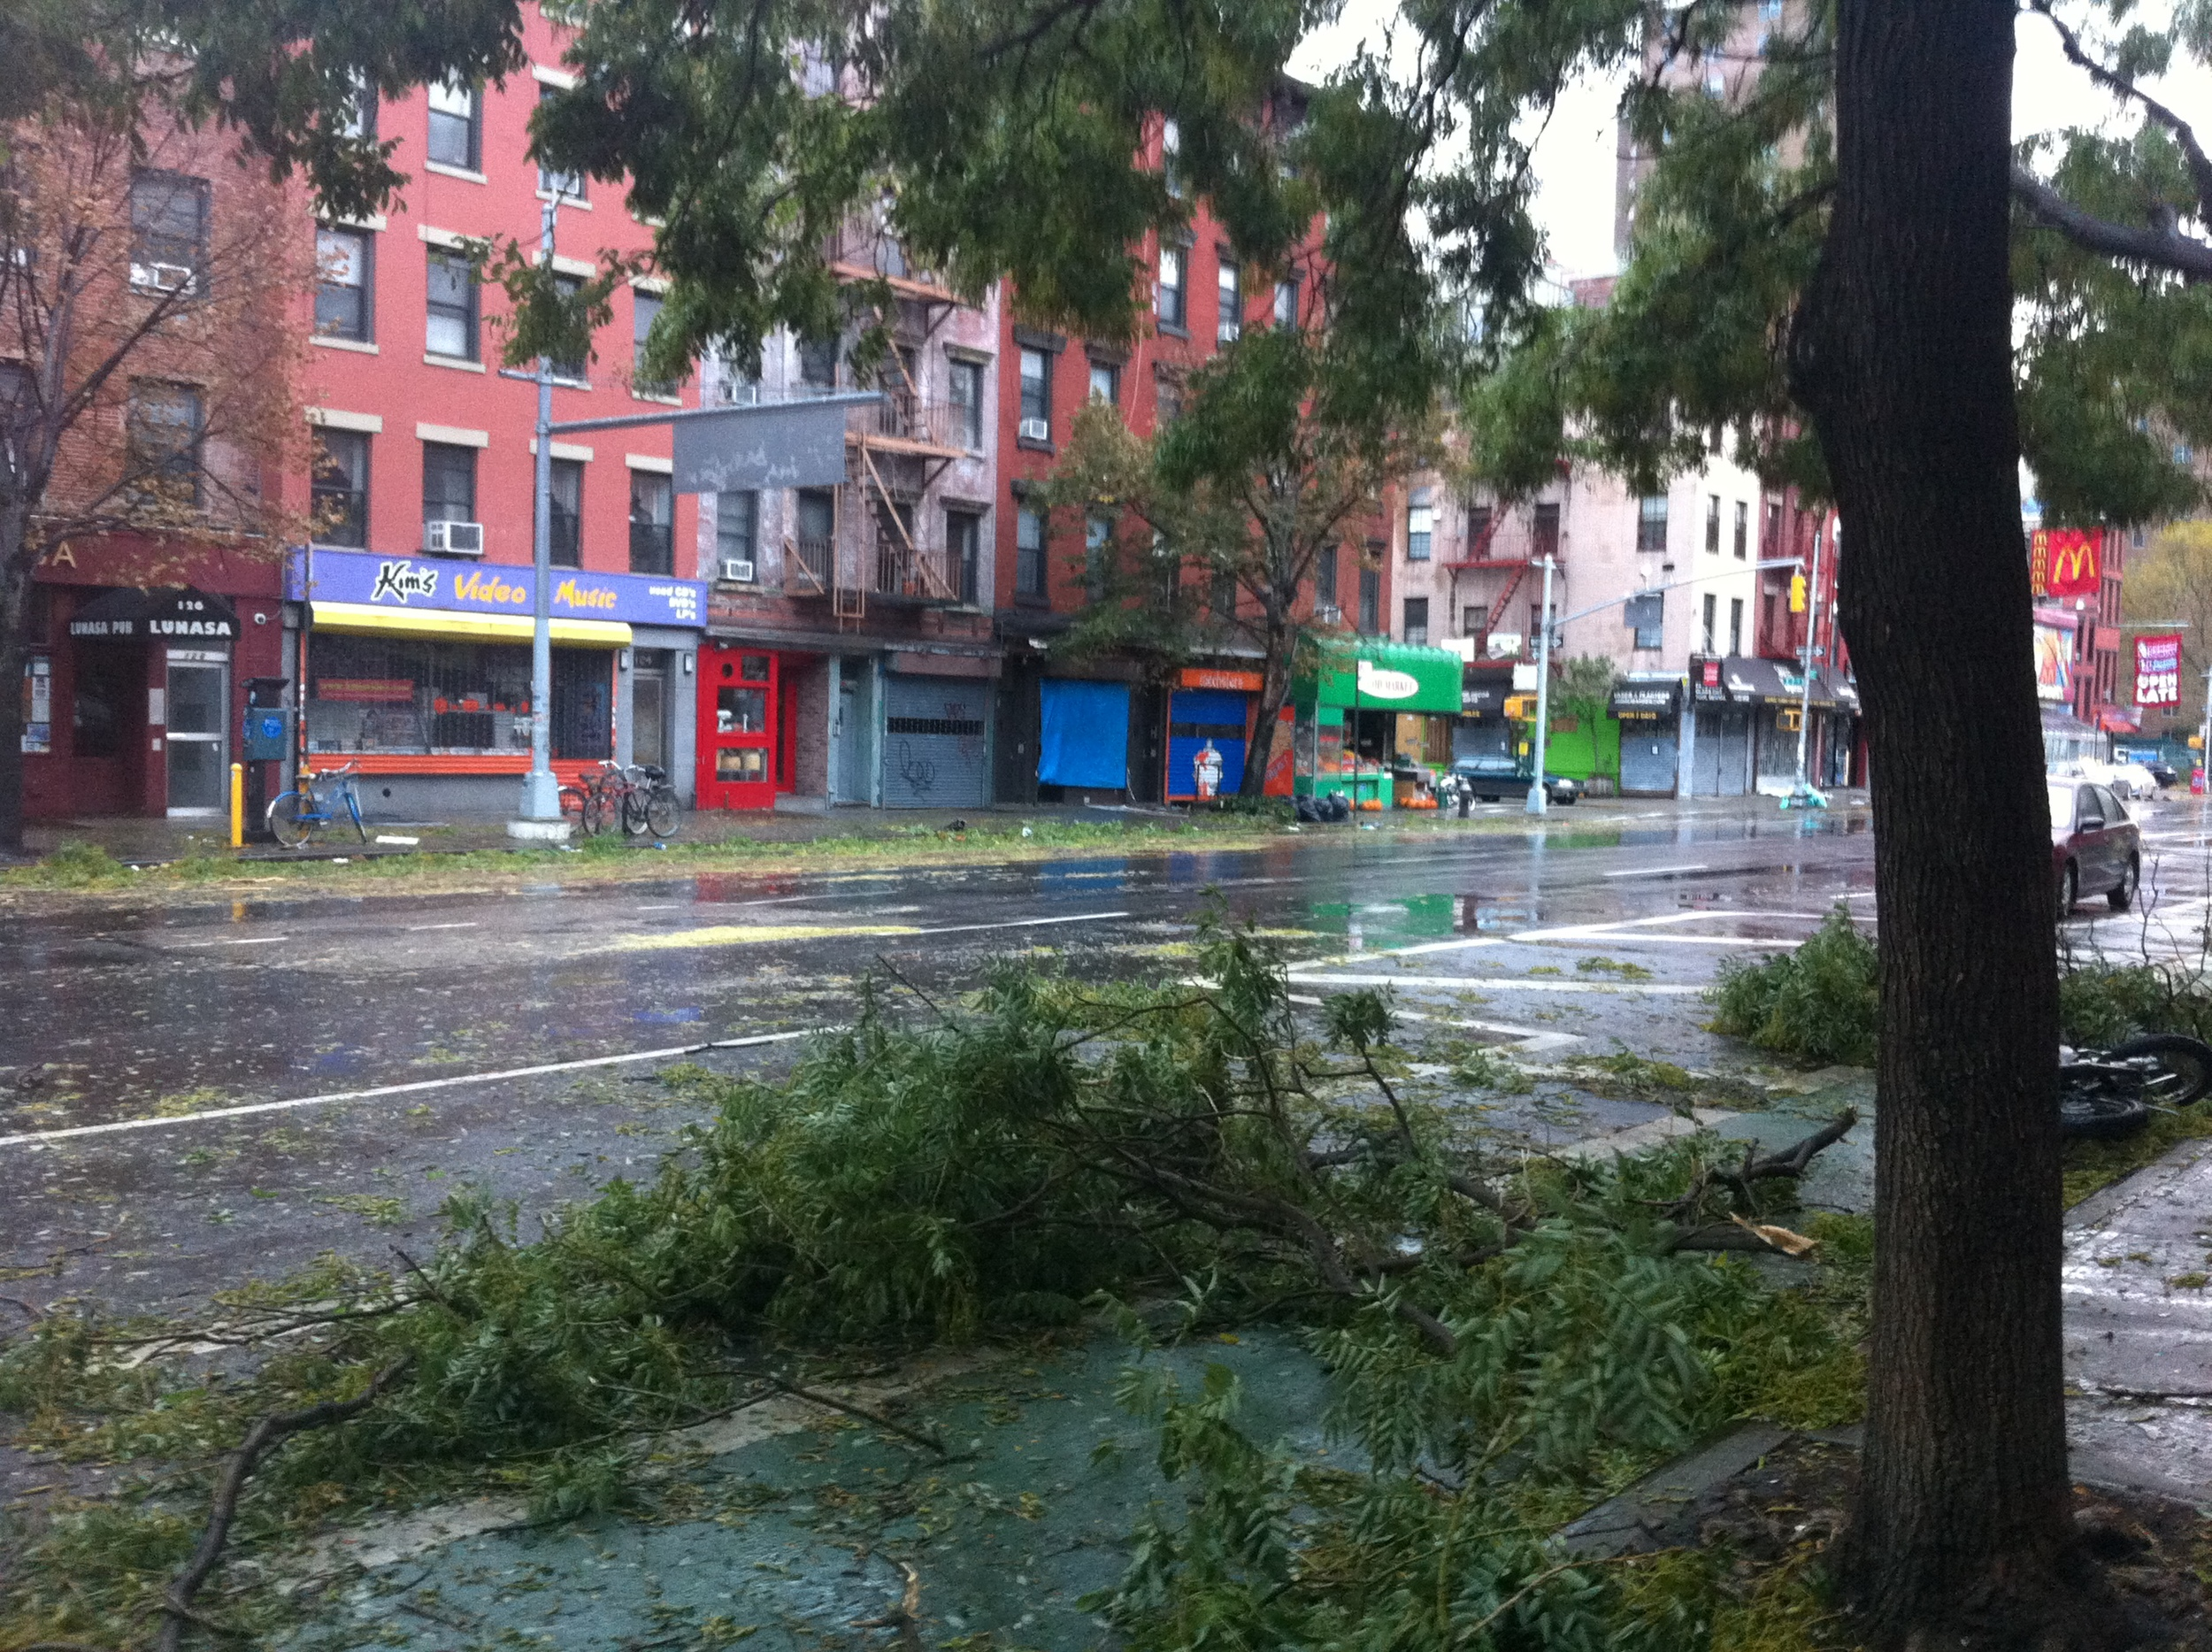 The damage along First Avenue after Superstorm Sandy